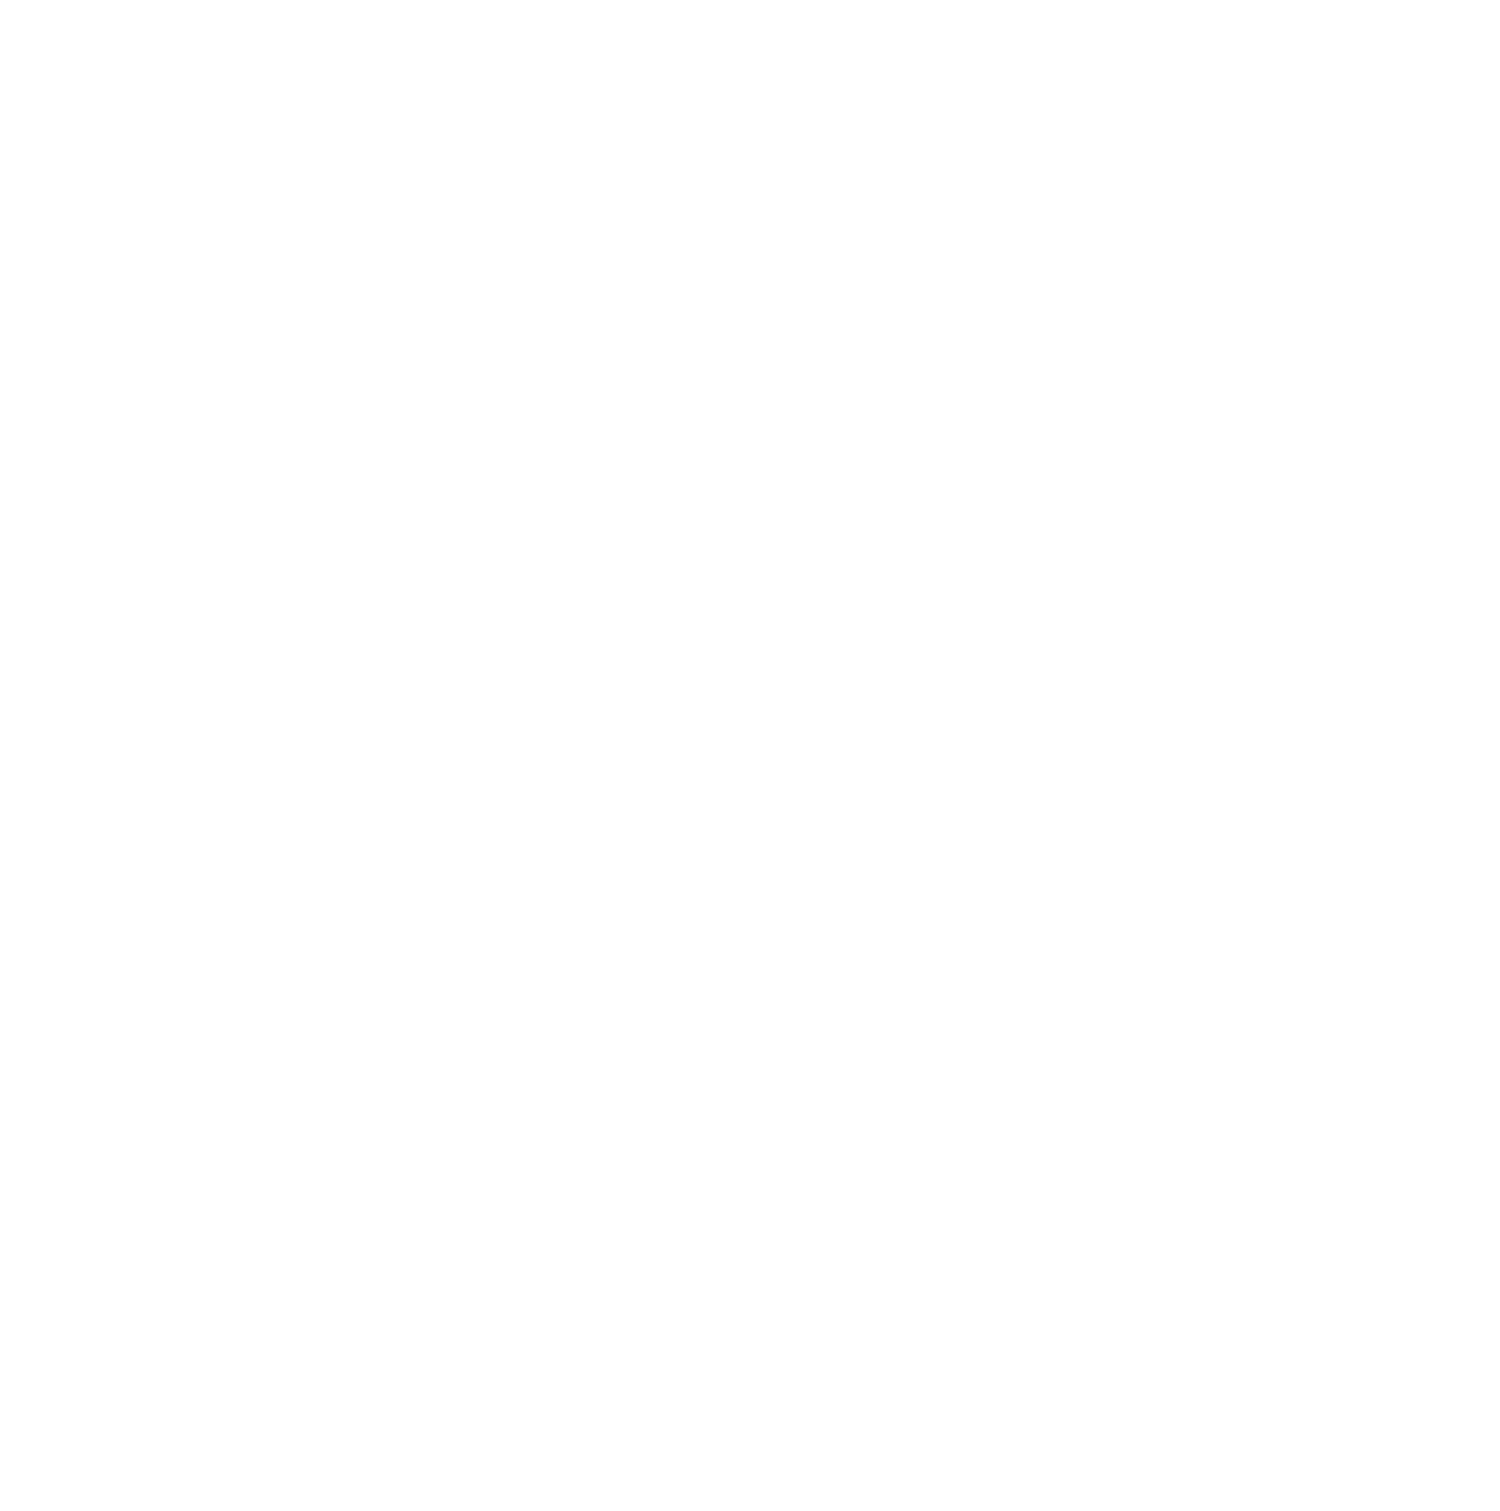 Laboratory for Precision Neuroimaging at UCSF Department of Radiology and Biomedical Imaging